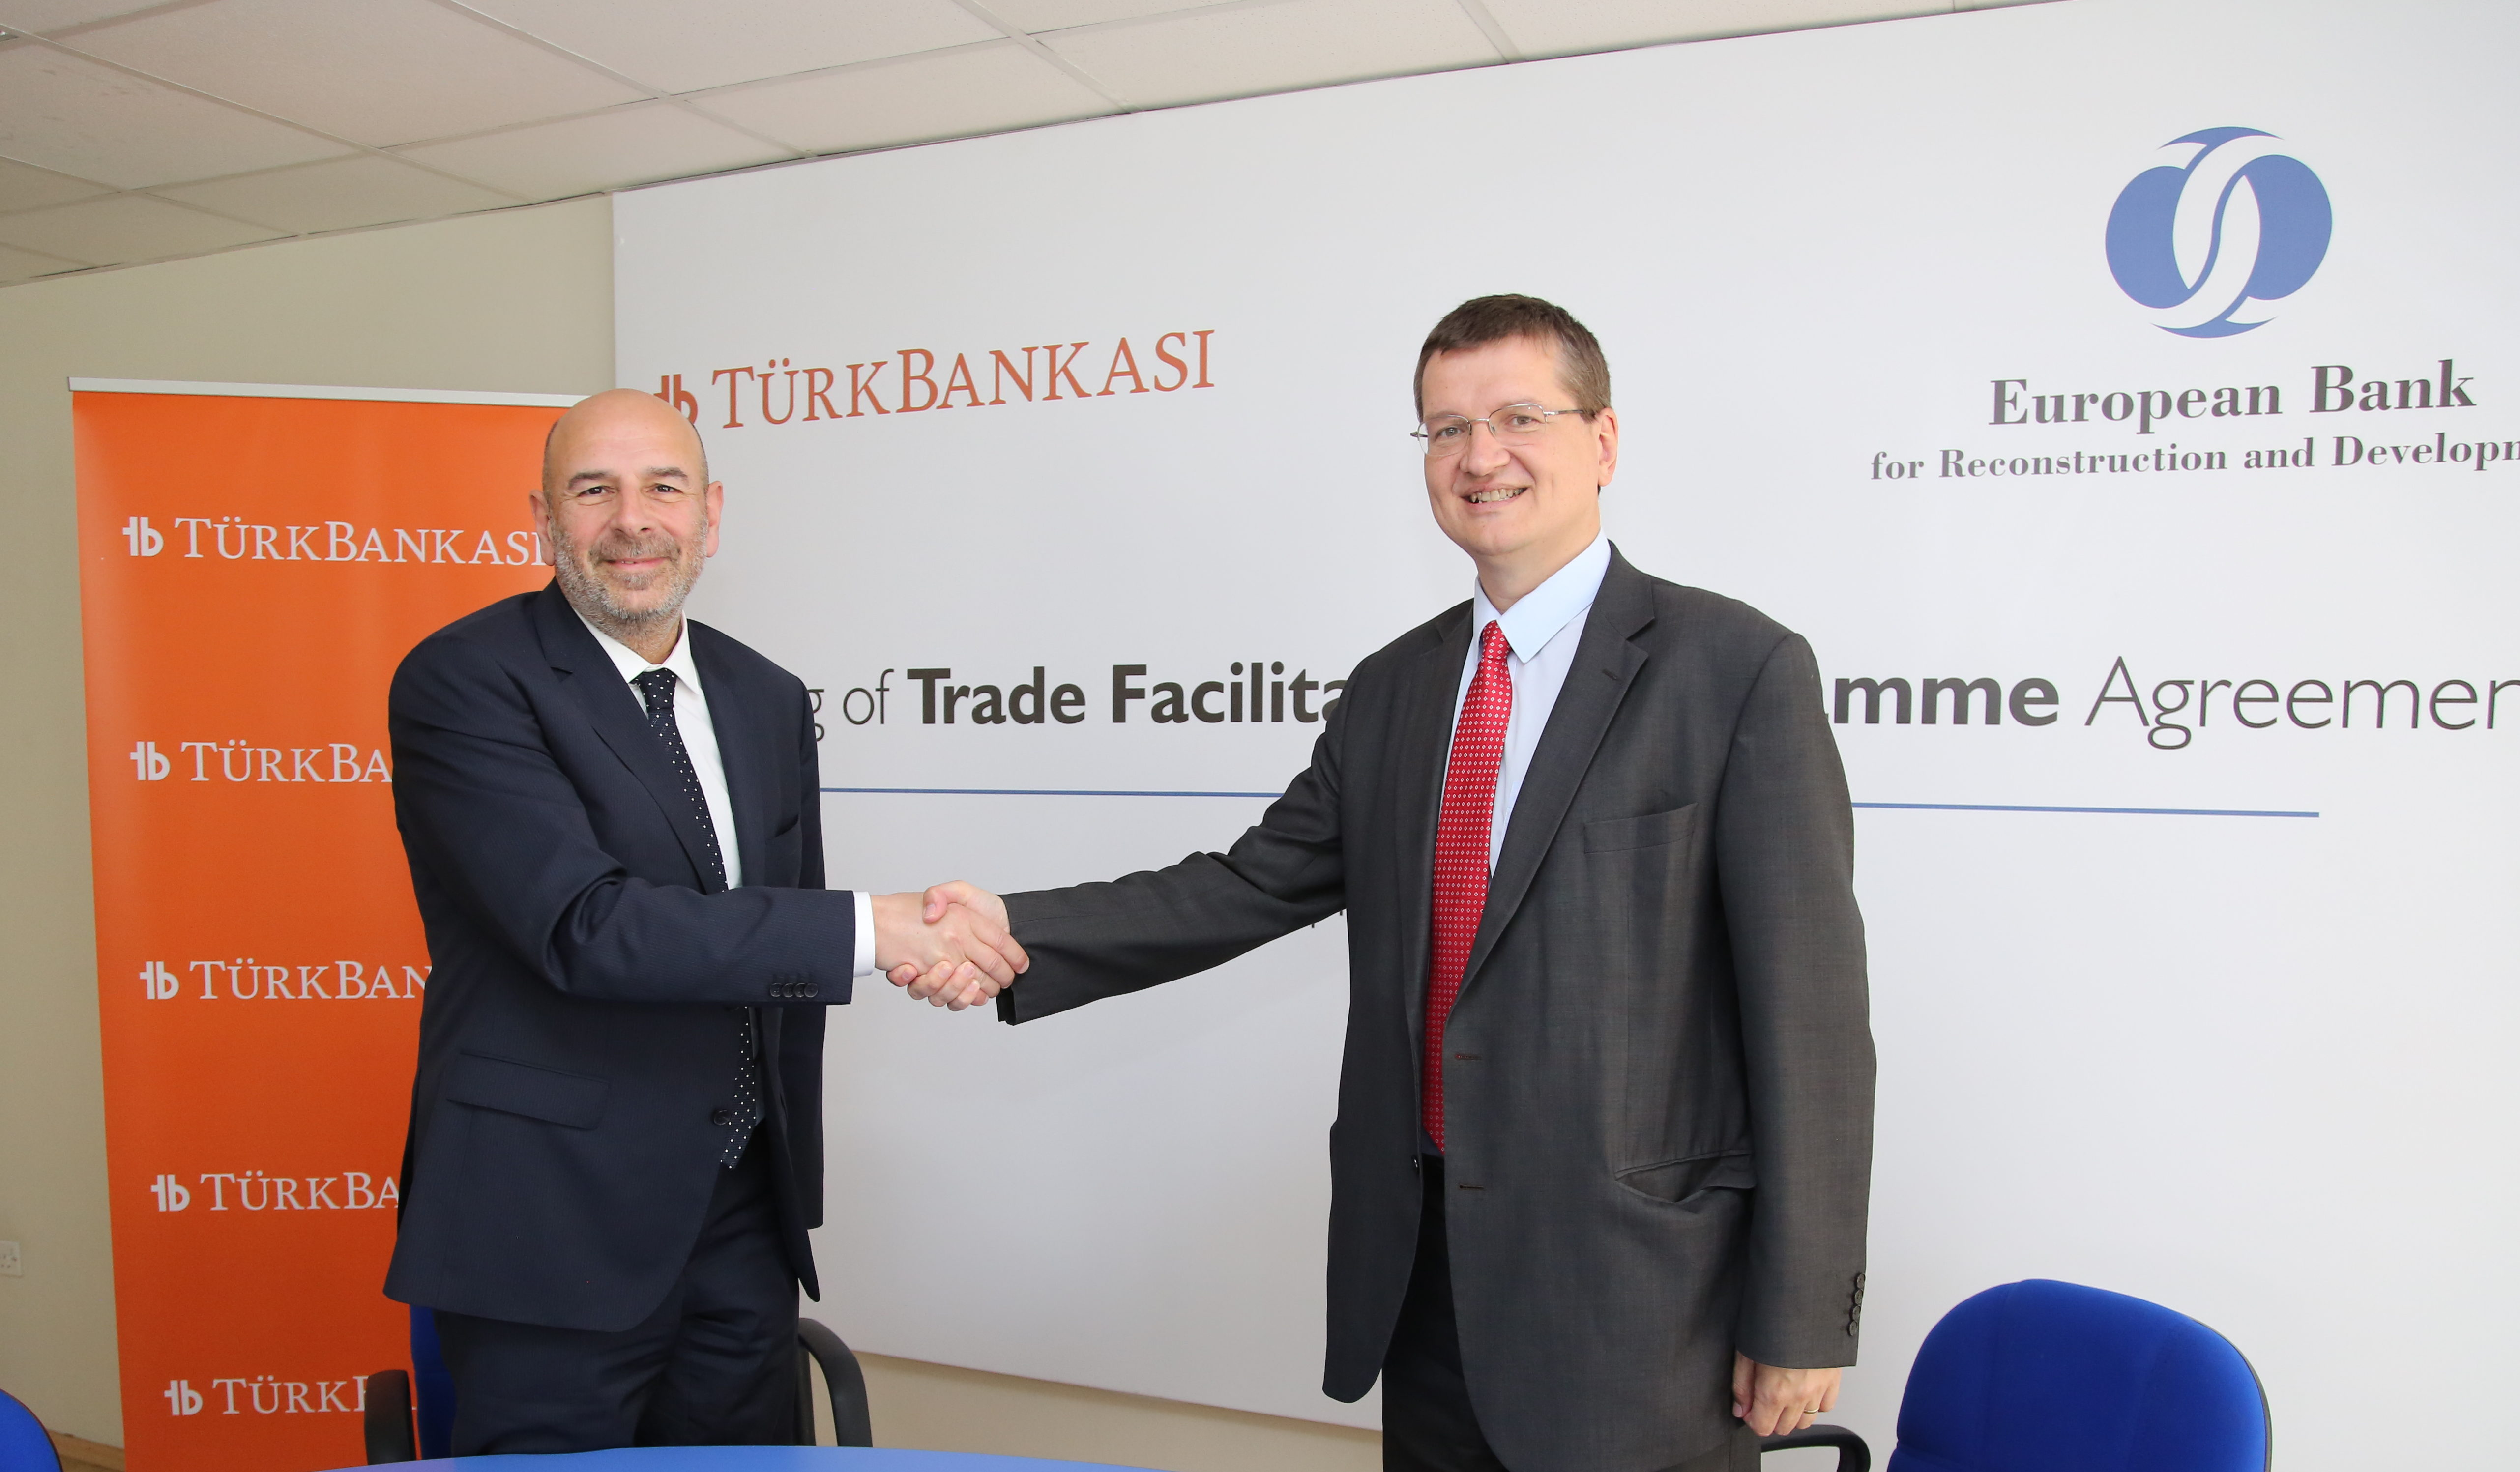 ebrd channels more resources to support trade finance in